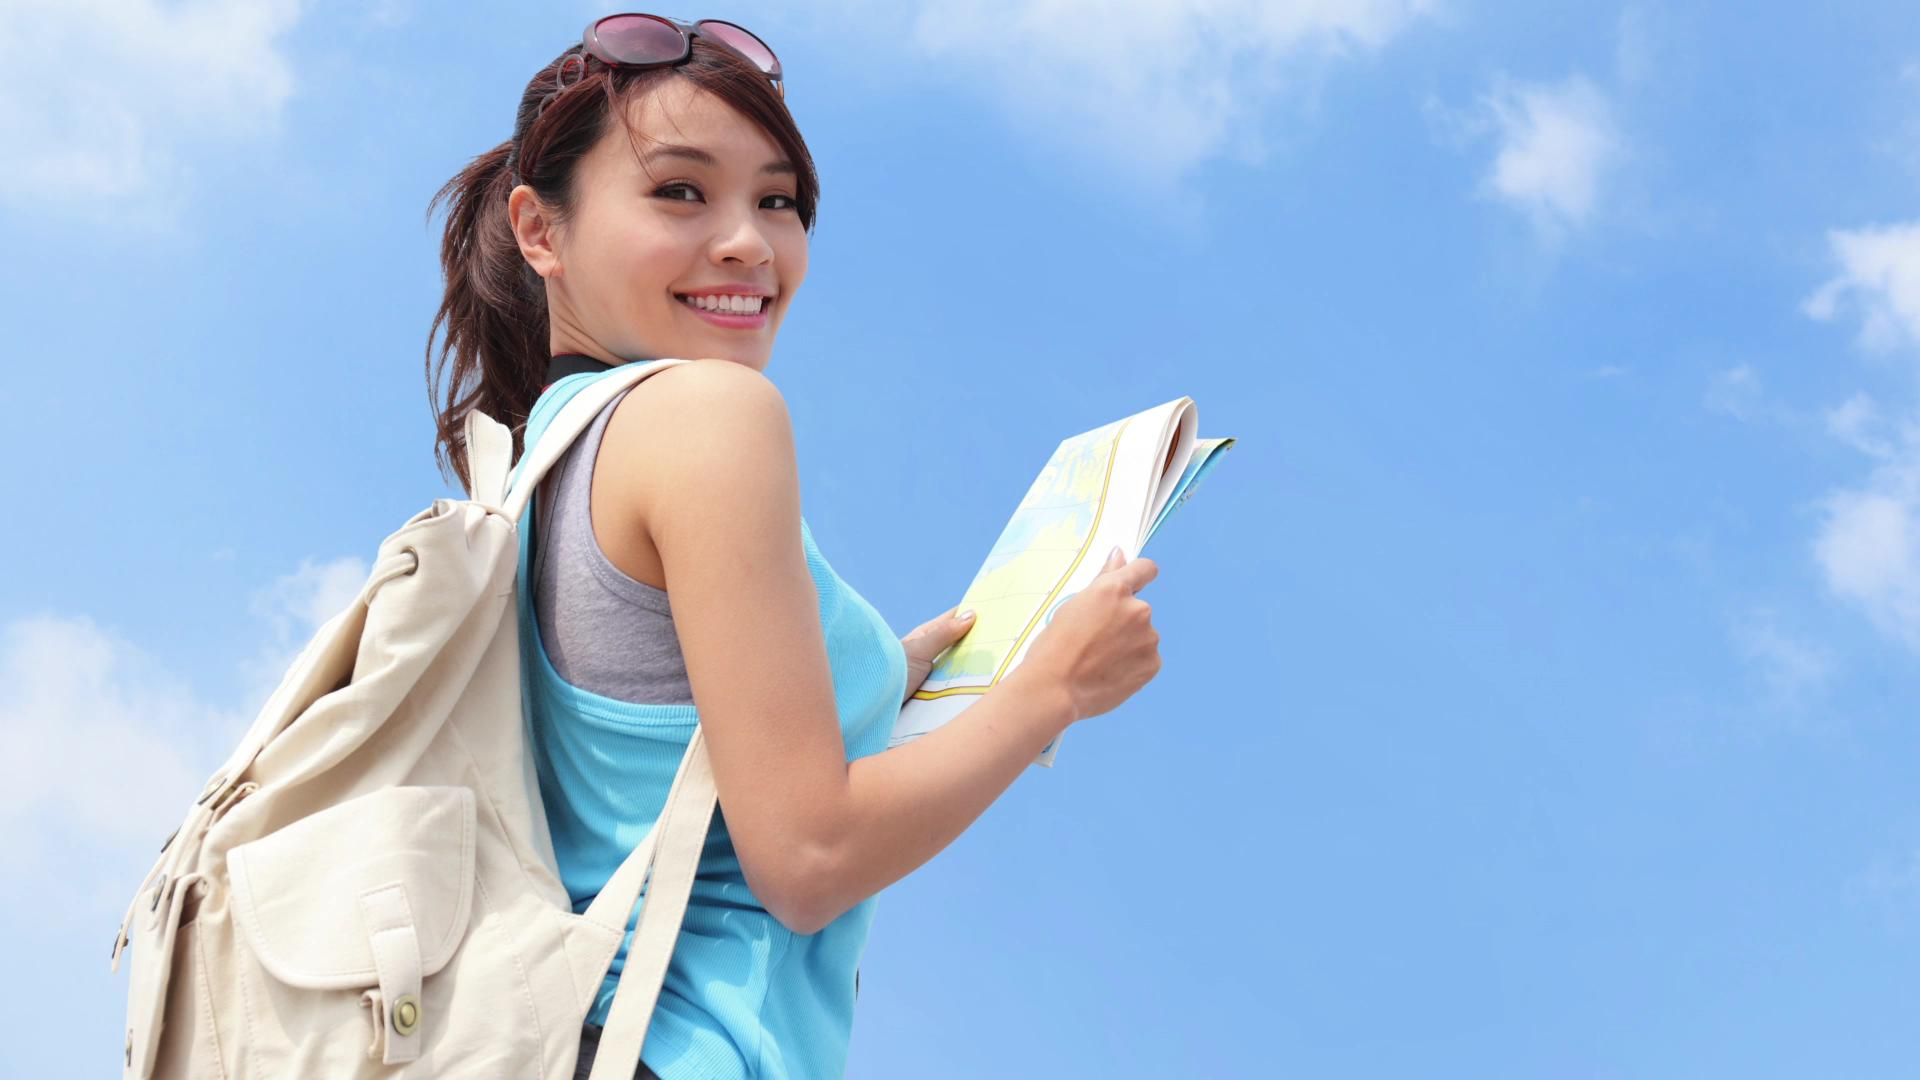 Safety tips for traveling solo